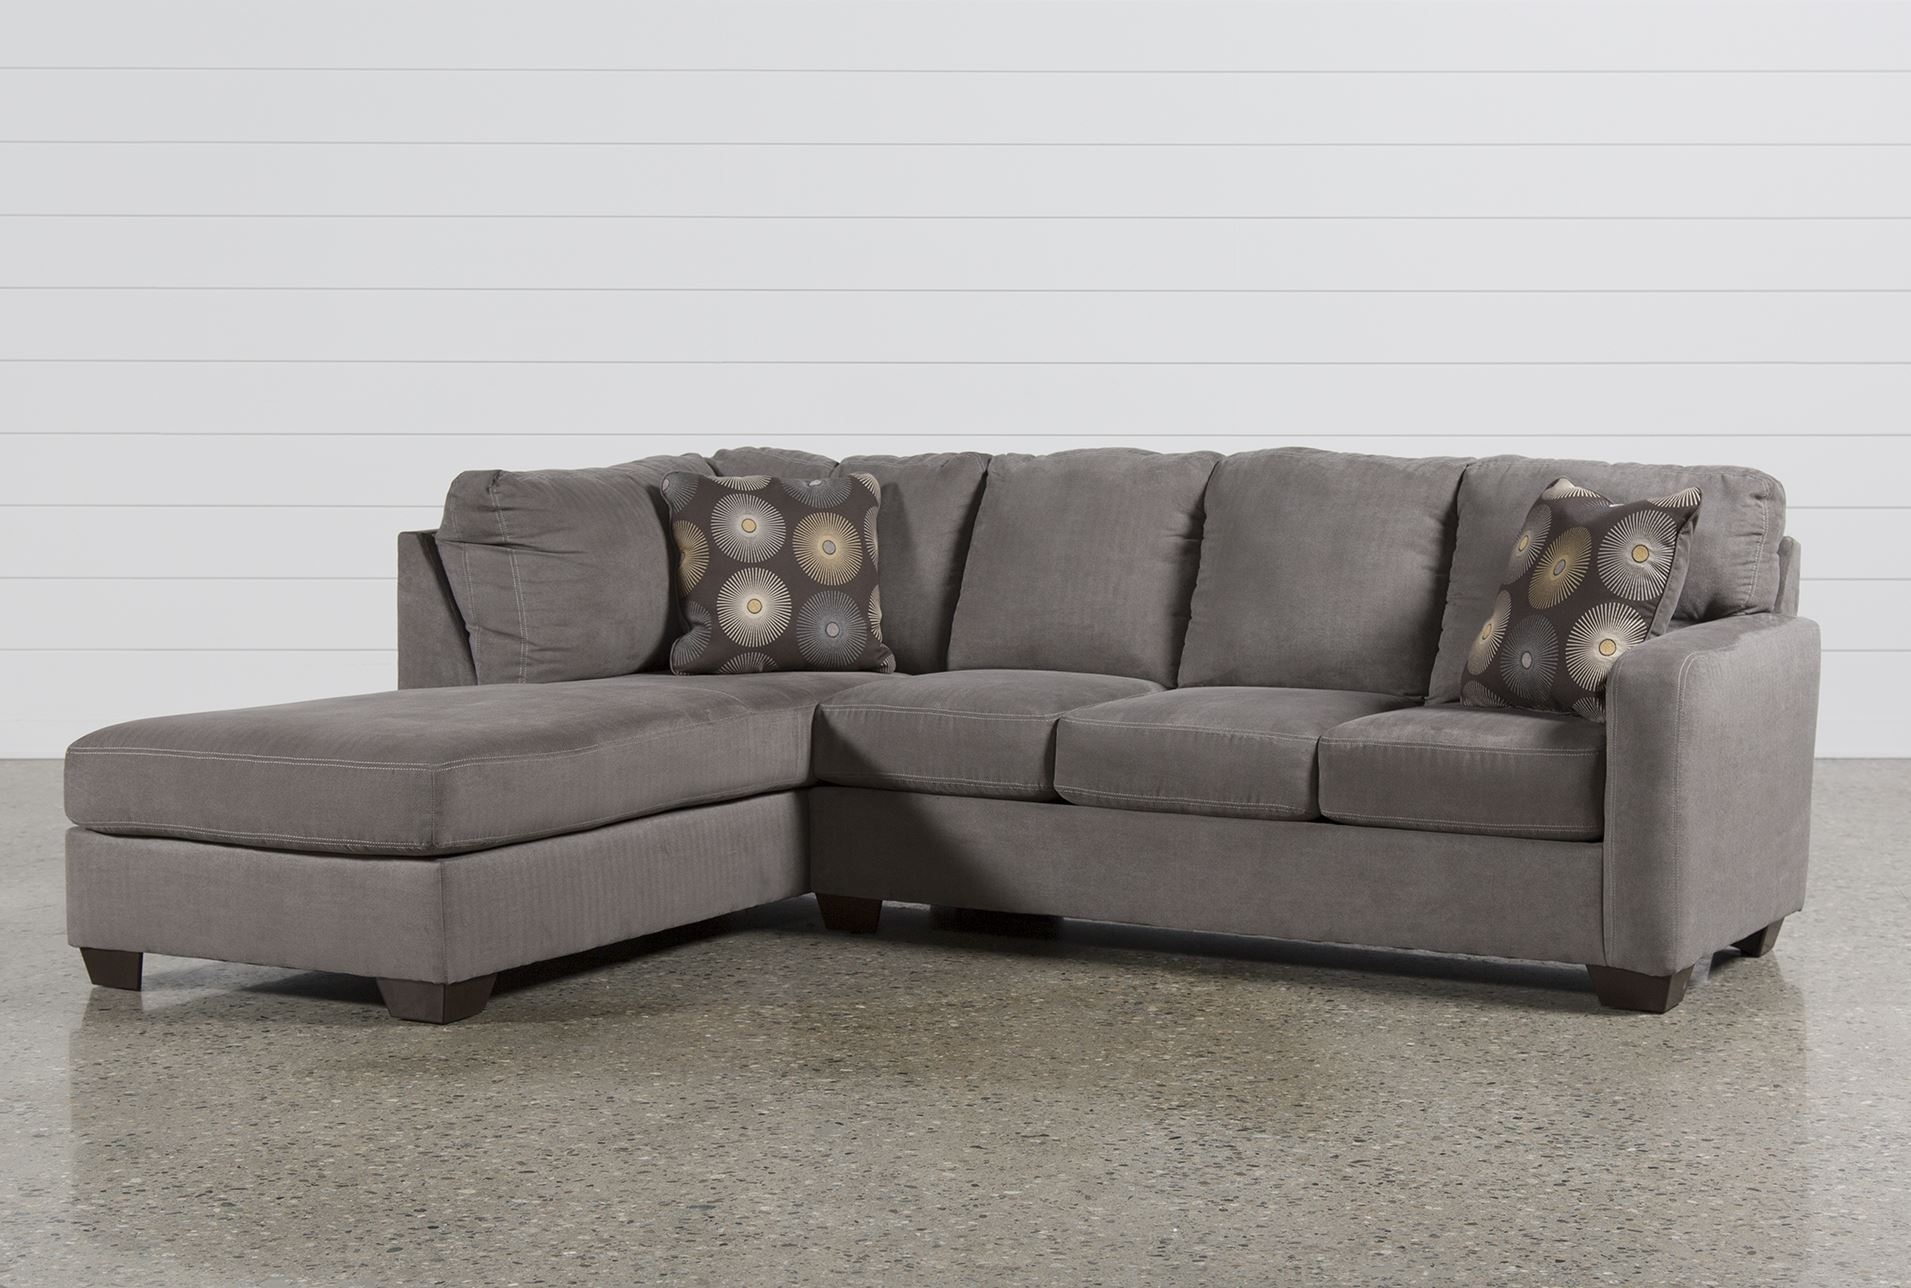 Laf Chaise Sectional Sofa | Baci Living Room Within Arrowmask 2 Piece Sectionals With Laf Chaise (Image 9 of 25)